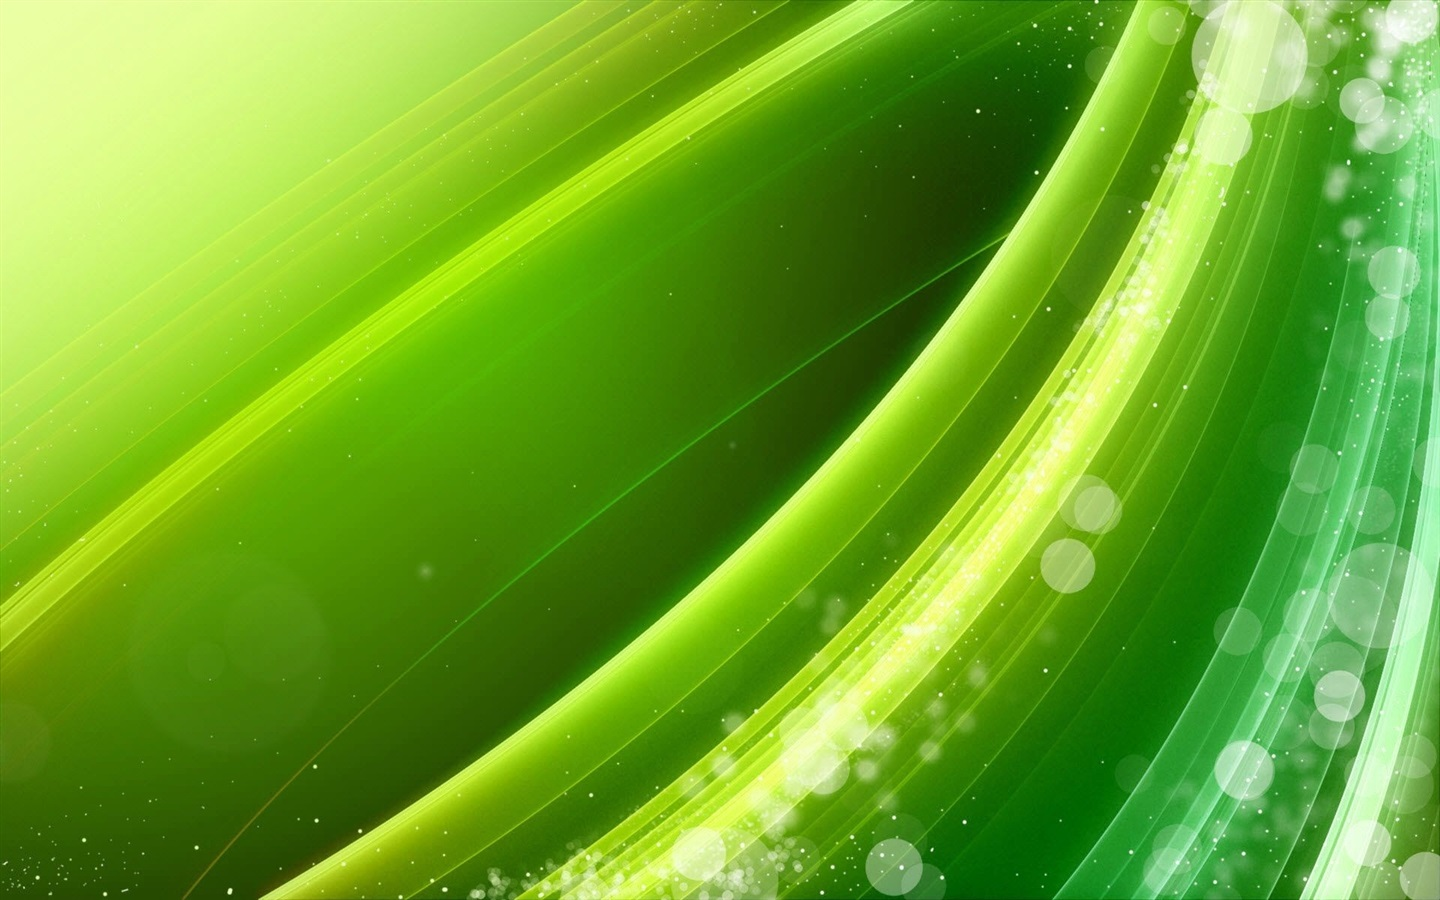 Green Line Wavy Abstract Picture Wallpaper  1440x900